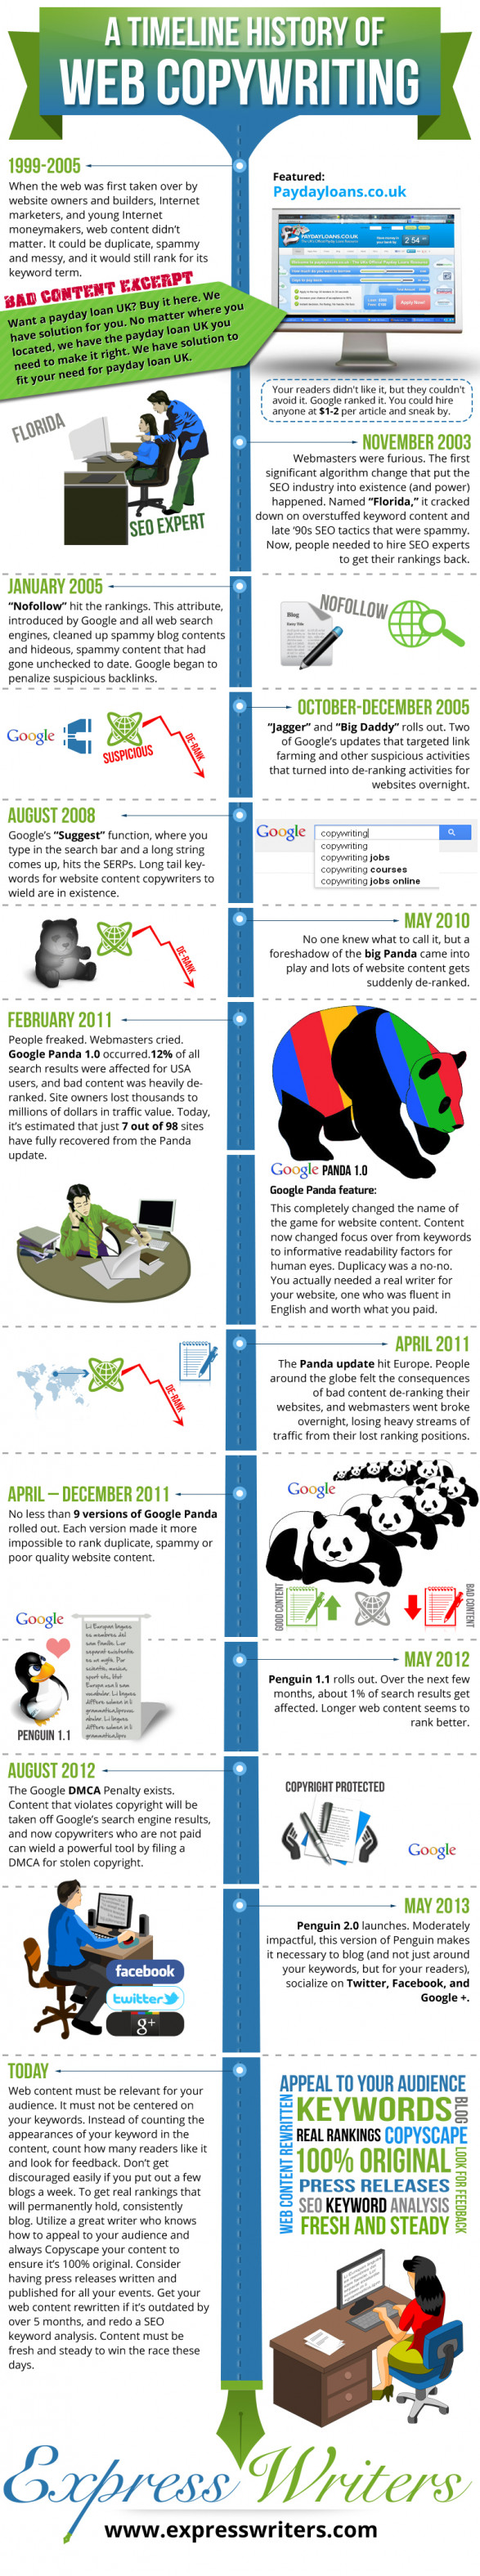 A Timeline History of SEO and Web Copywriting